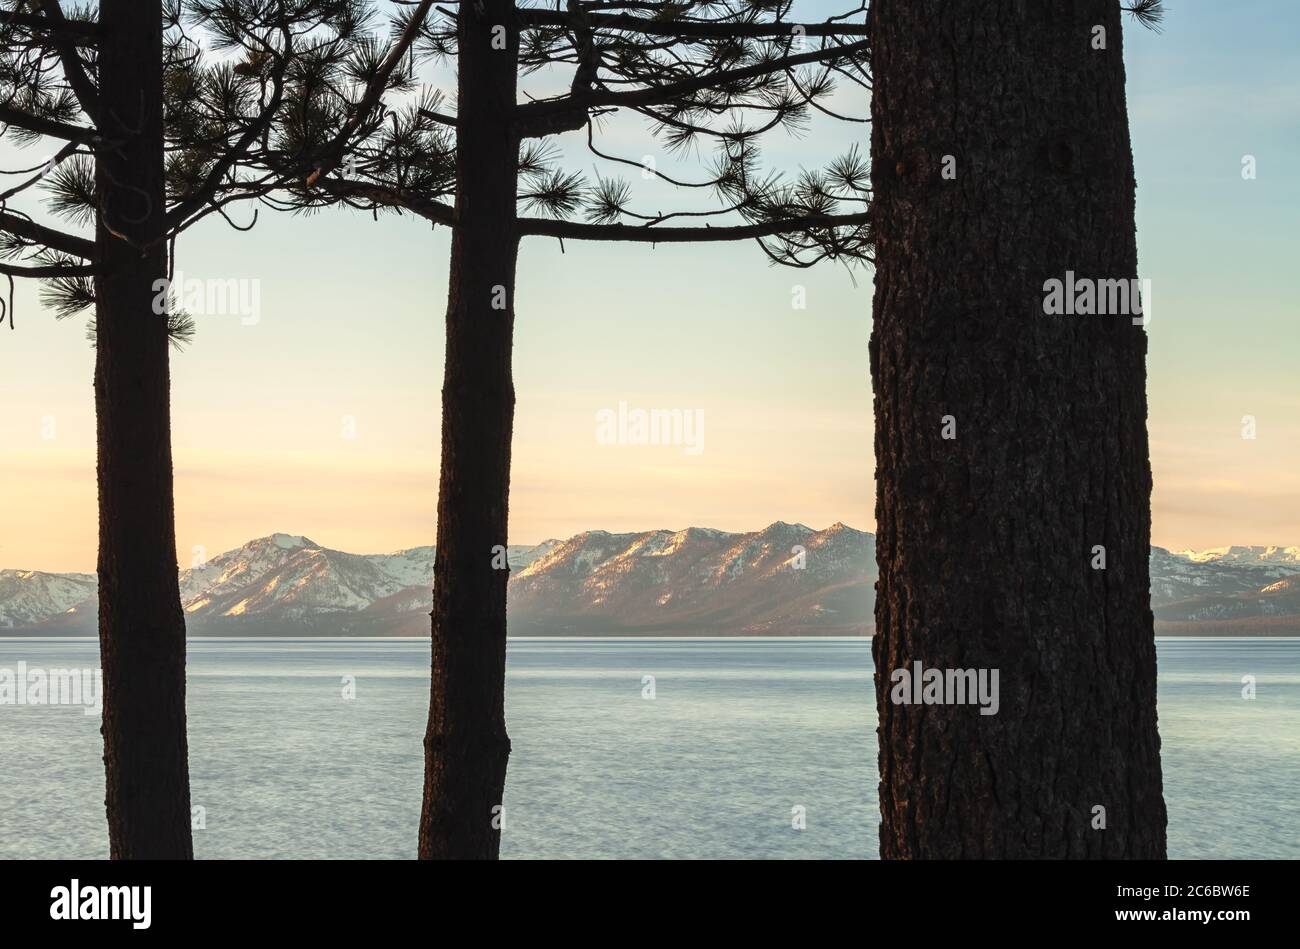 Scenic view of the Lake Tahoe at sunrise with the silhouette of pine trees in foreground, California, USA. Stock Photo